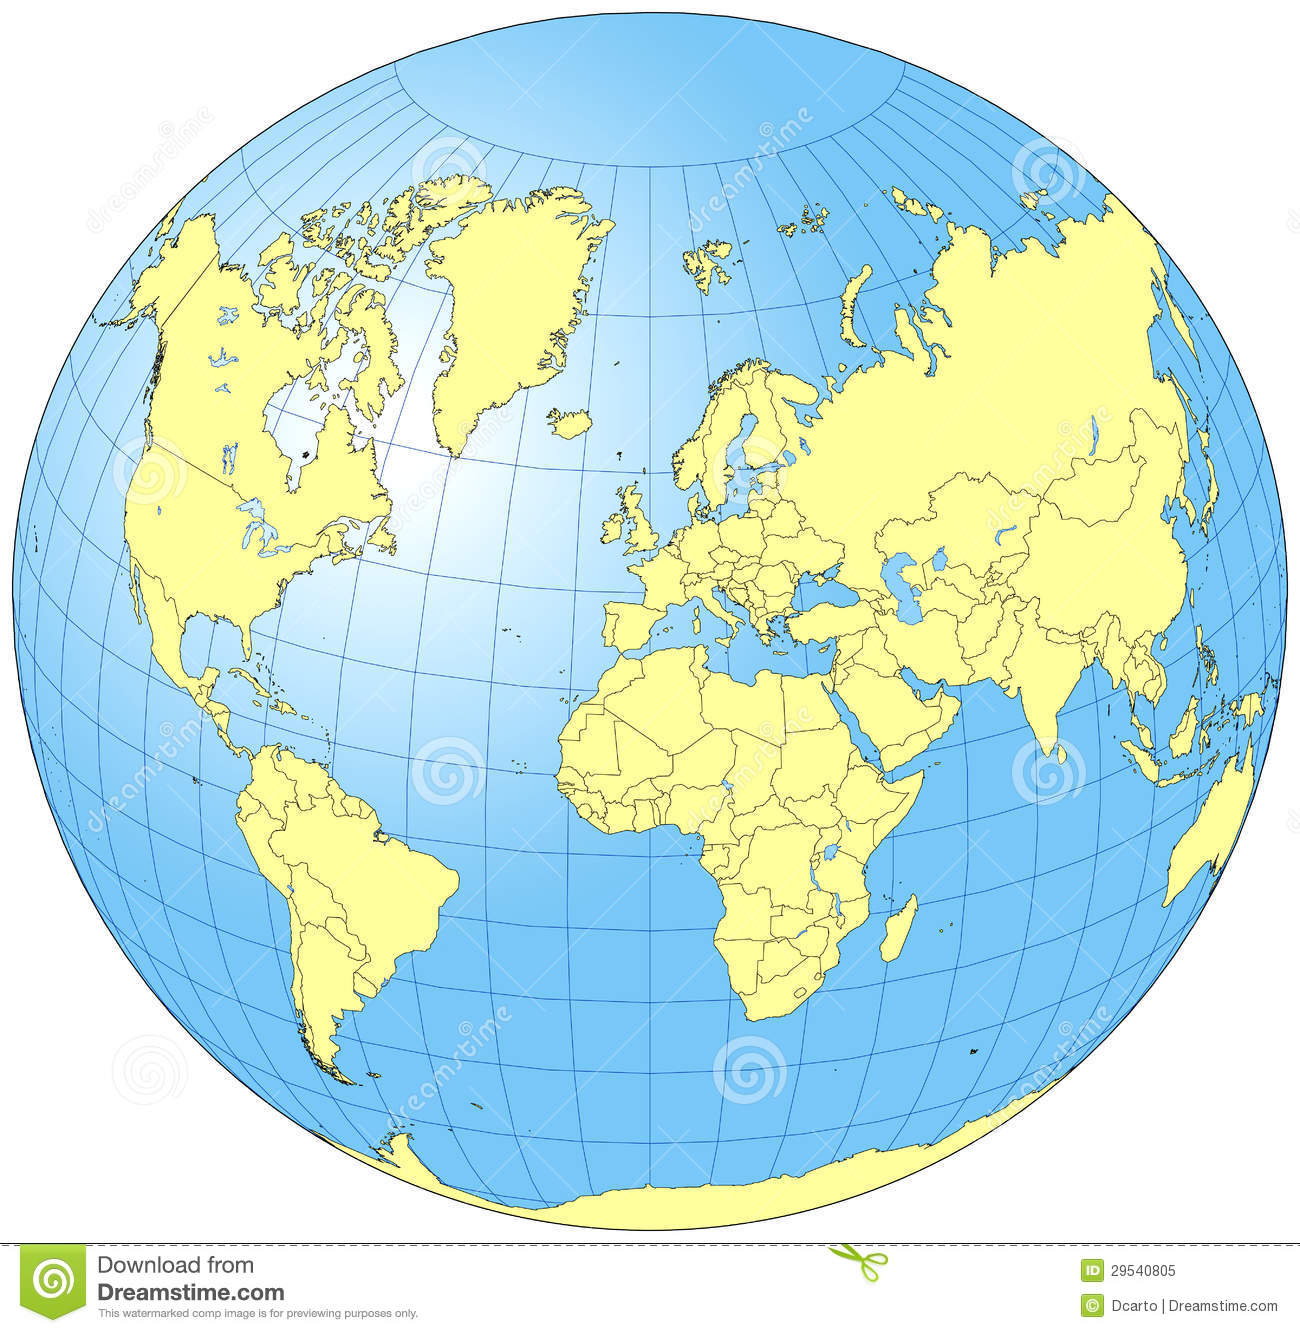 Whole World Globe Illustration 29540805 Megapixl